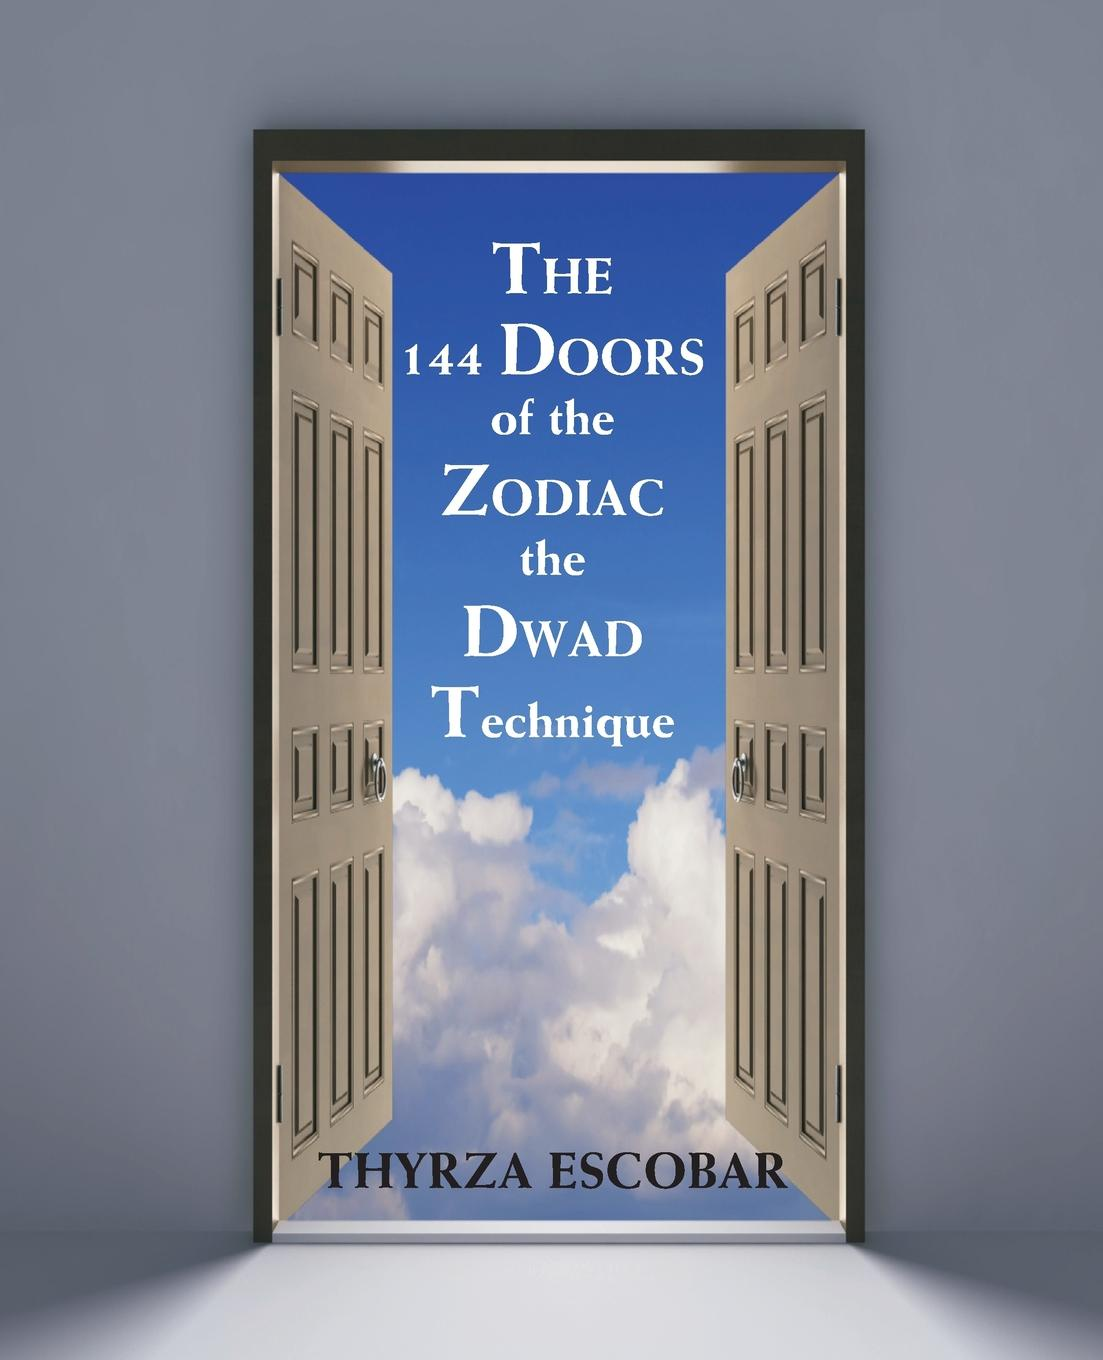 The 144 Doors of the Zodiac. The Dwad Technique